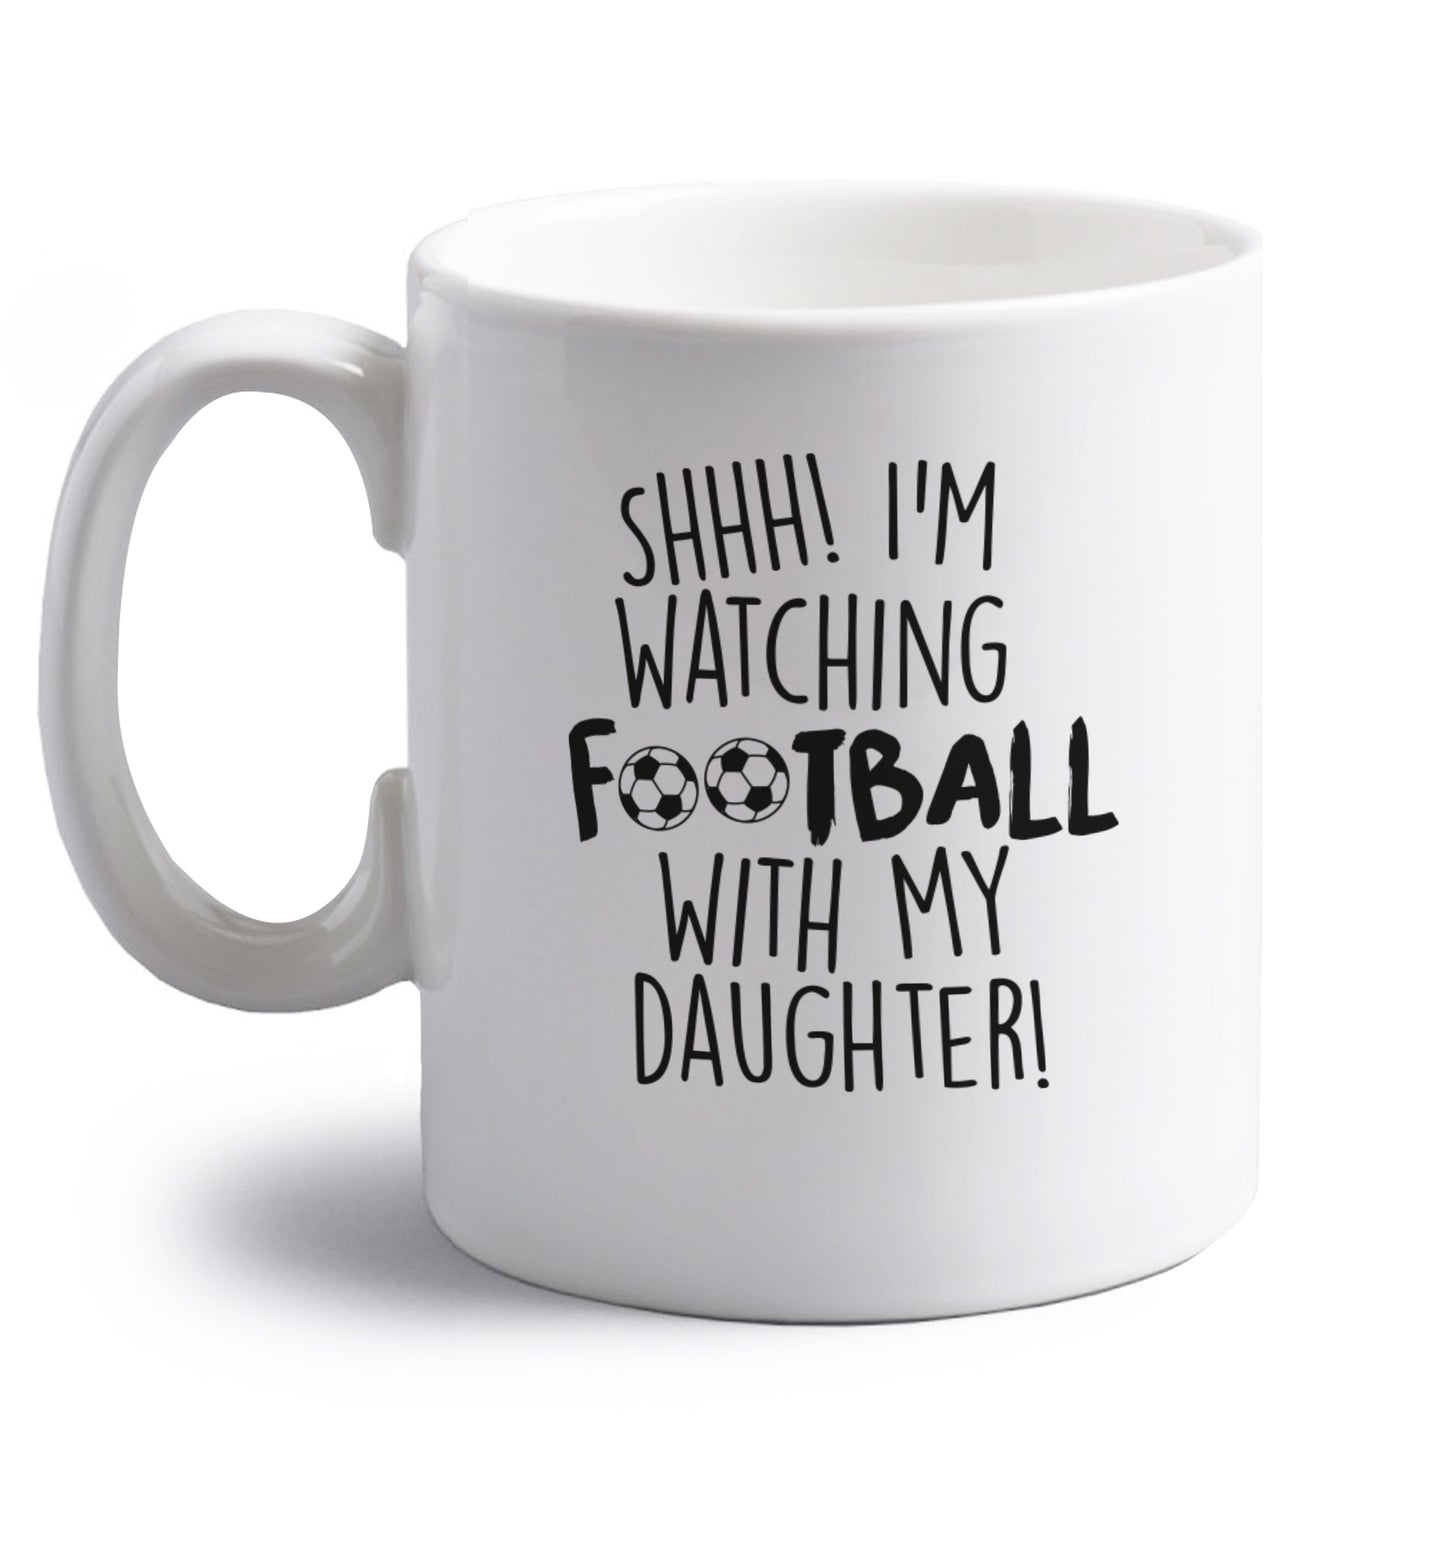 Shhh I'm watching football with my daughter right handed white ceramic mug